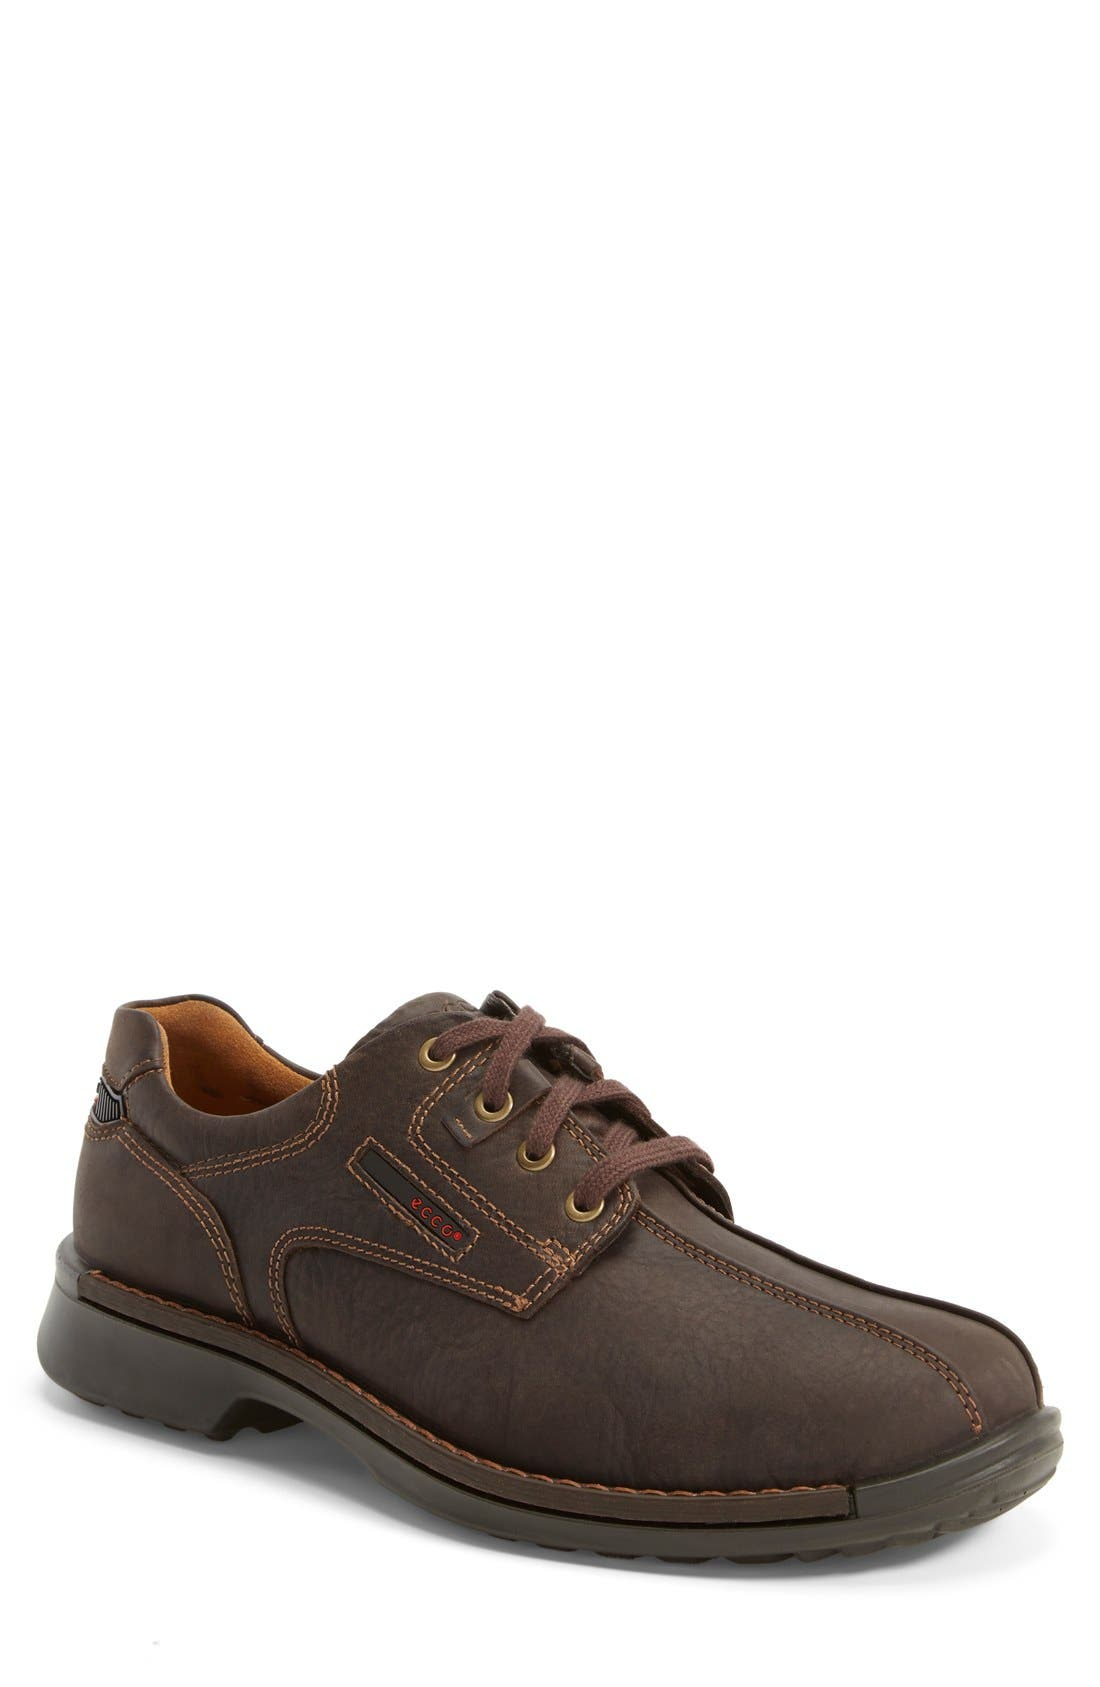 ECCO Fusion Bike Toe Oxford